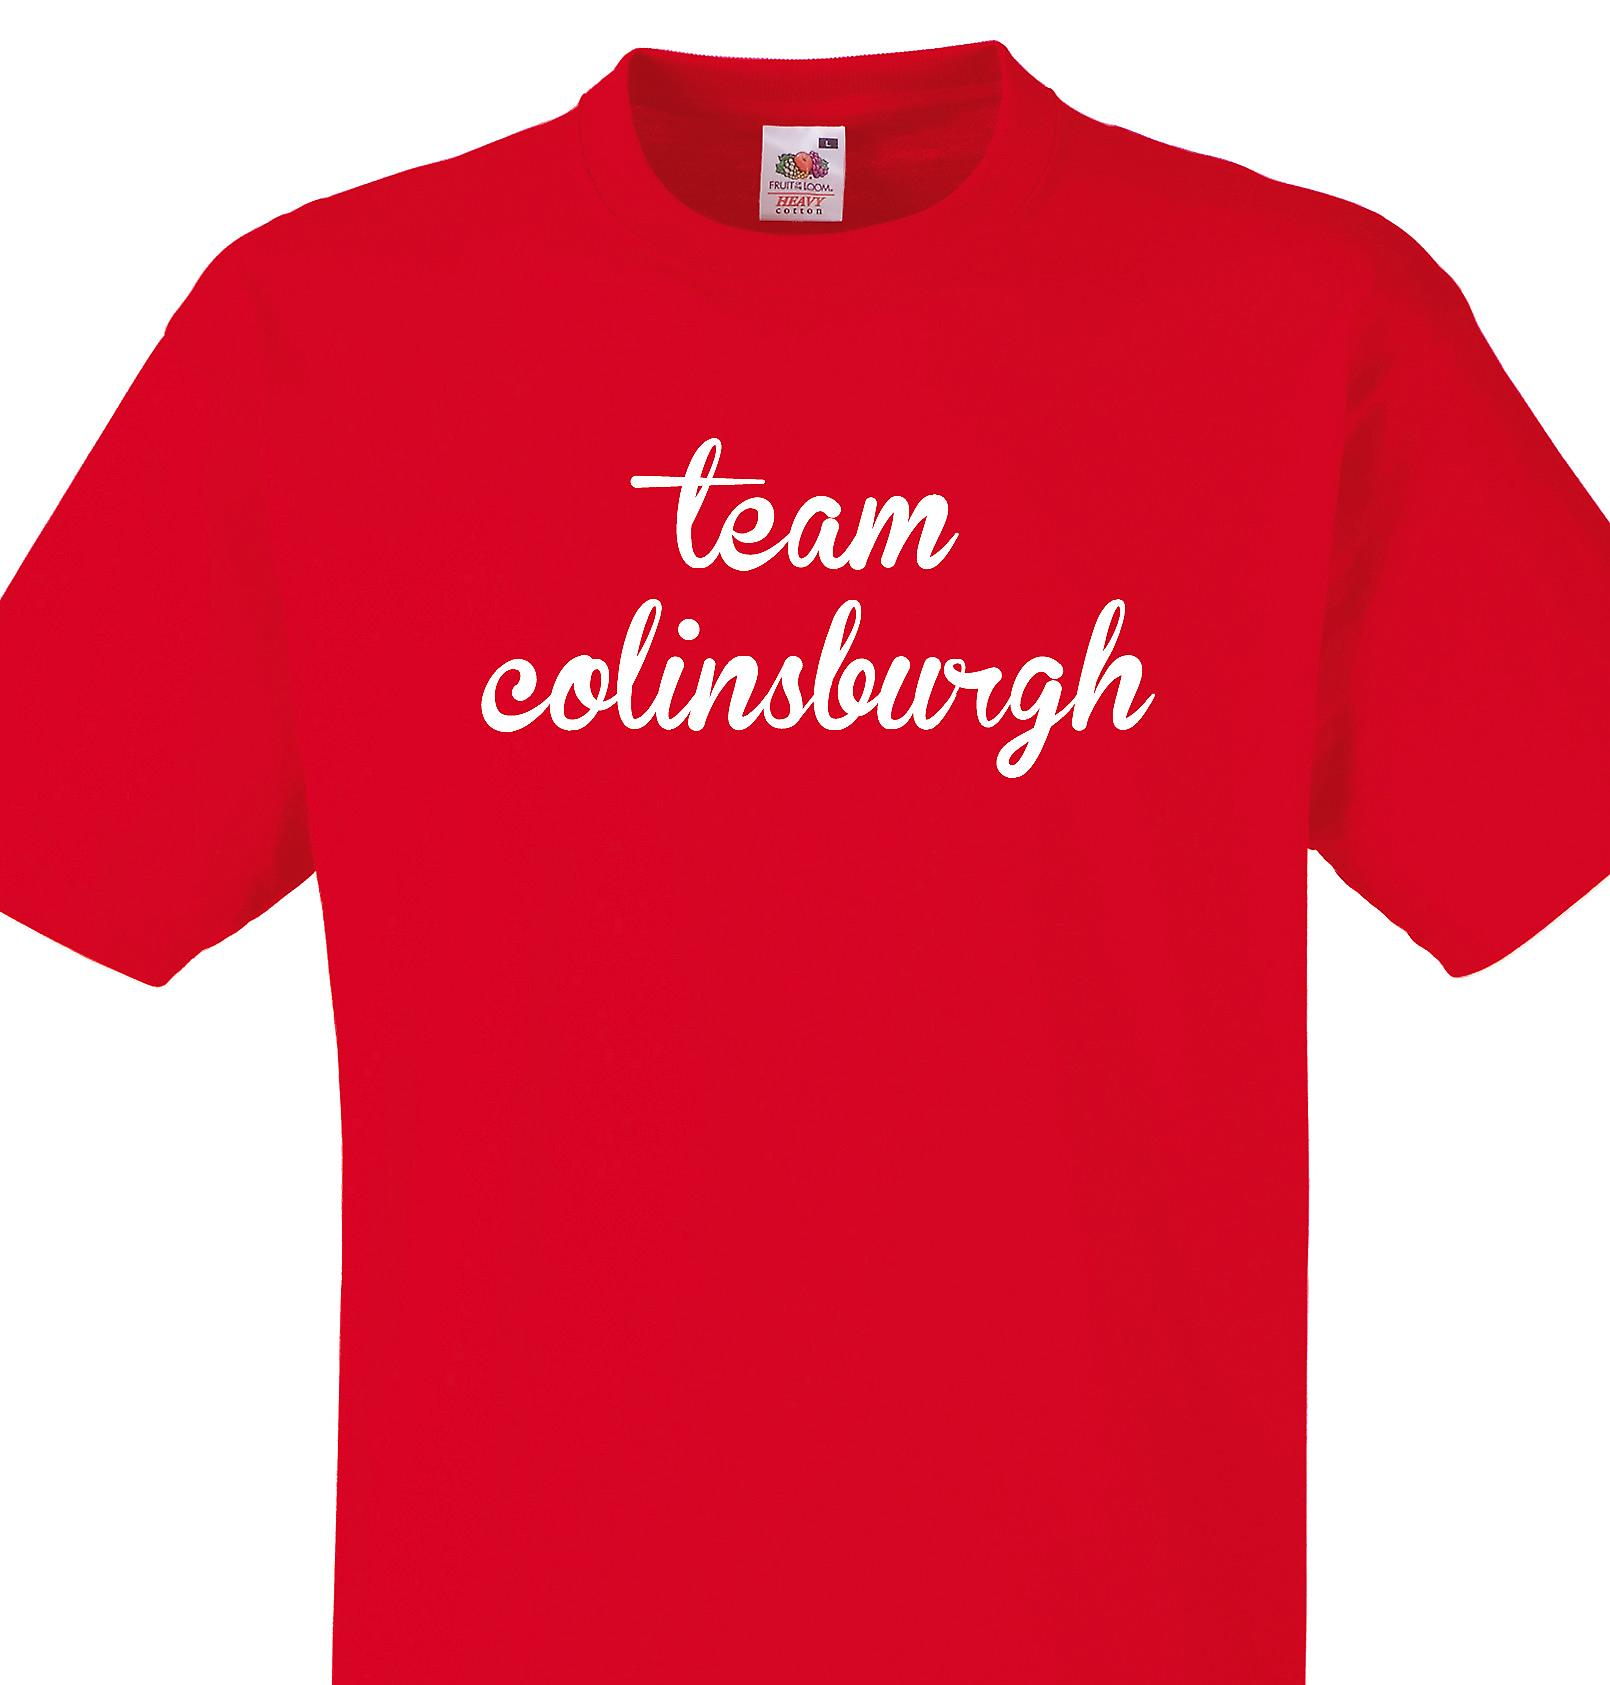 Team Colinsburgh Red T shirt